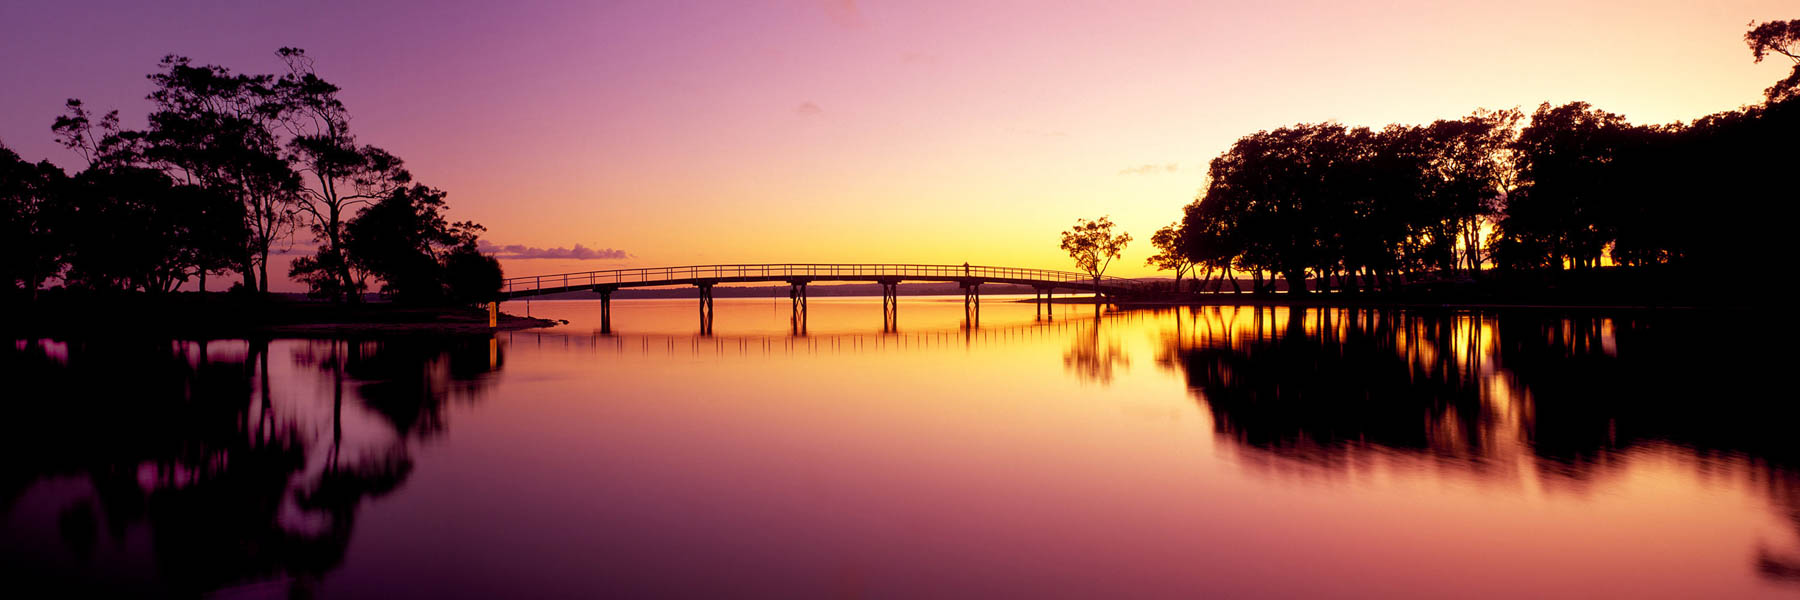 Perfect sunrise reflections at Budgewoi, Tuggerah Lakes, Central Coast, NSW, Australia.